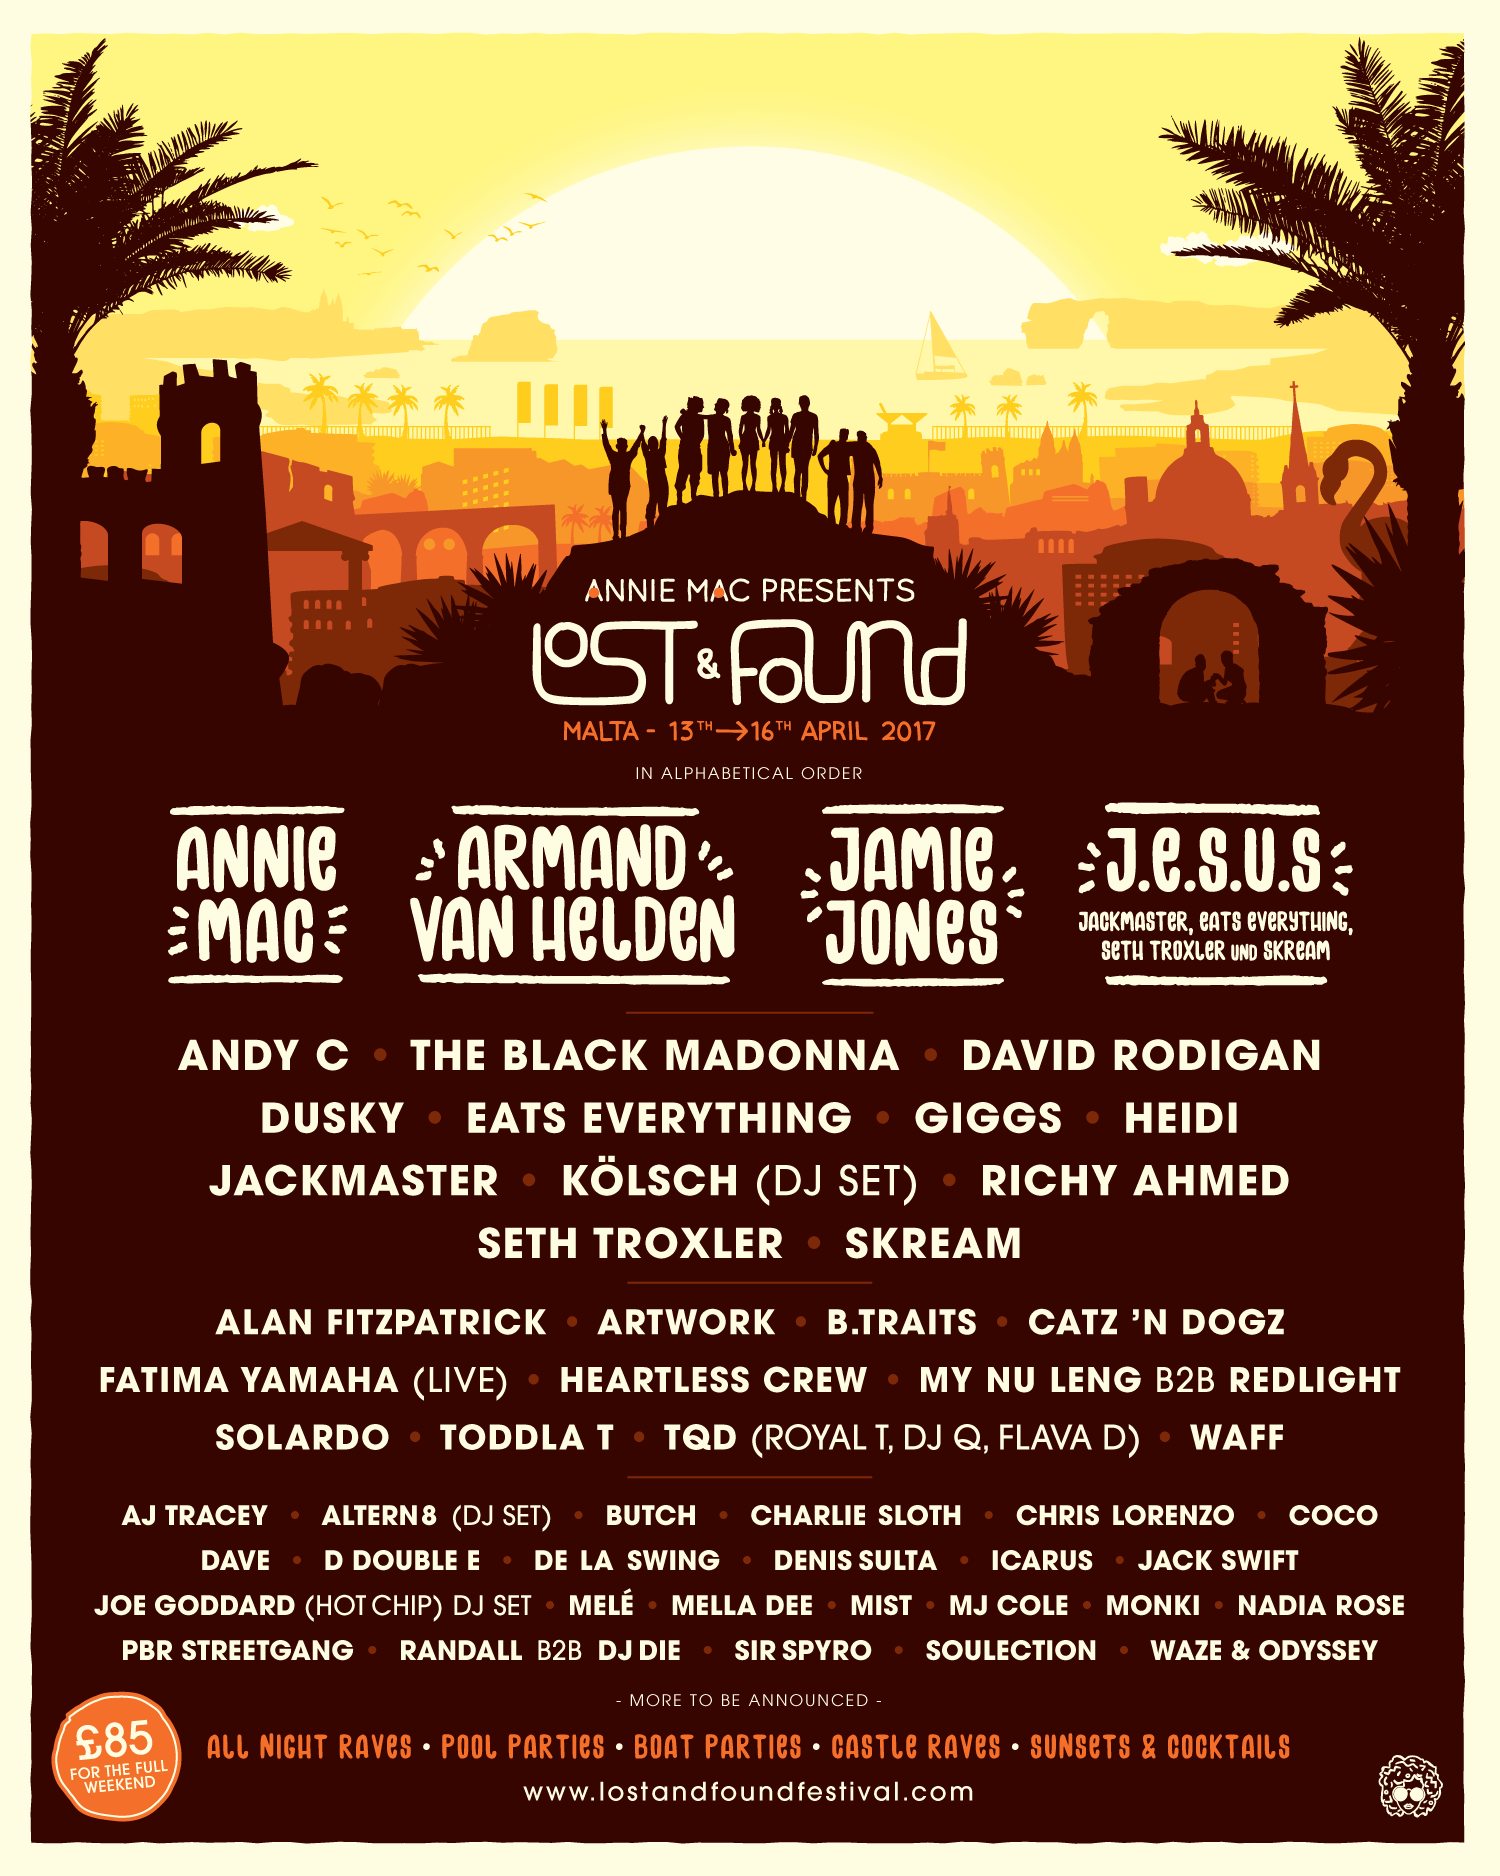 Lost And Found Malta 2017 Festival Poster